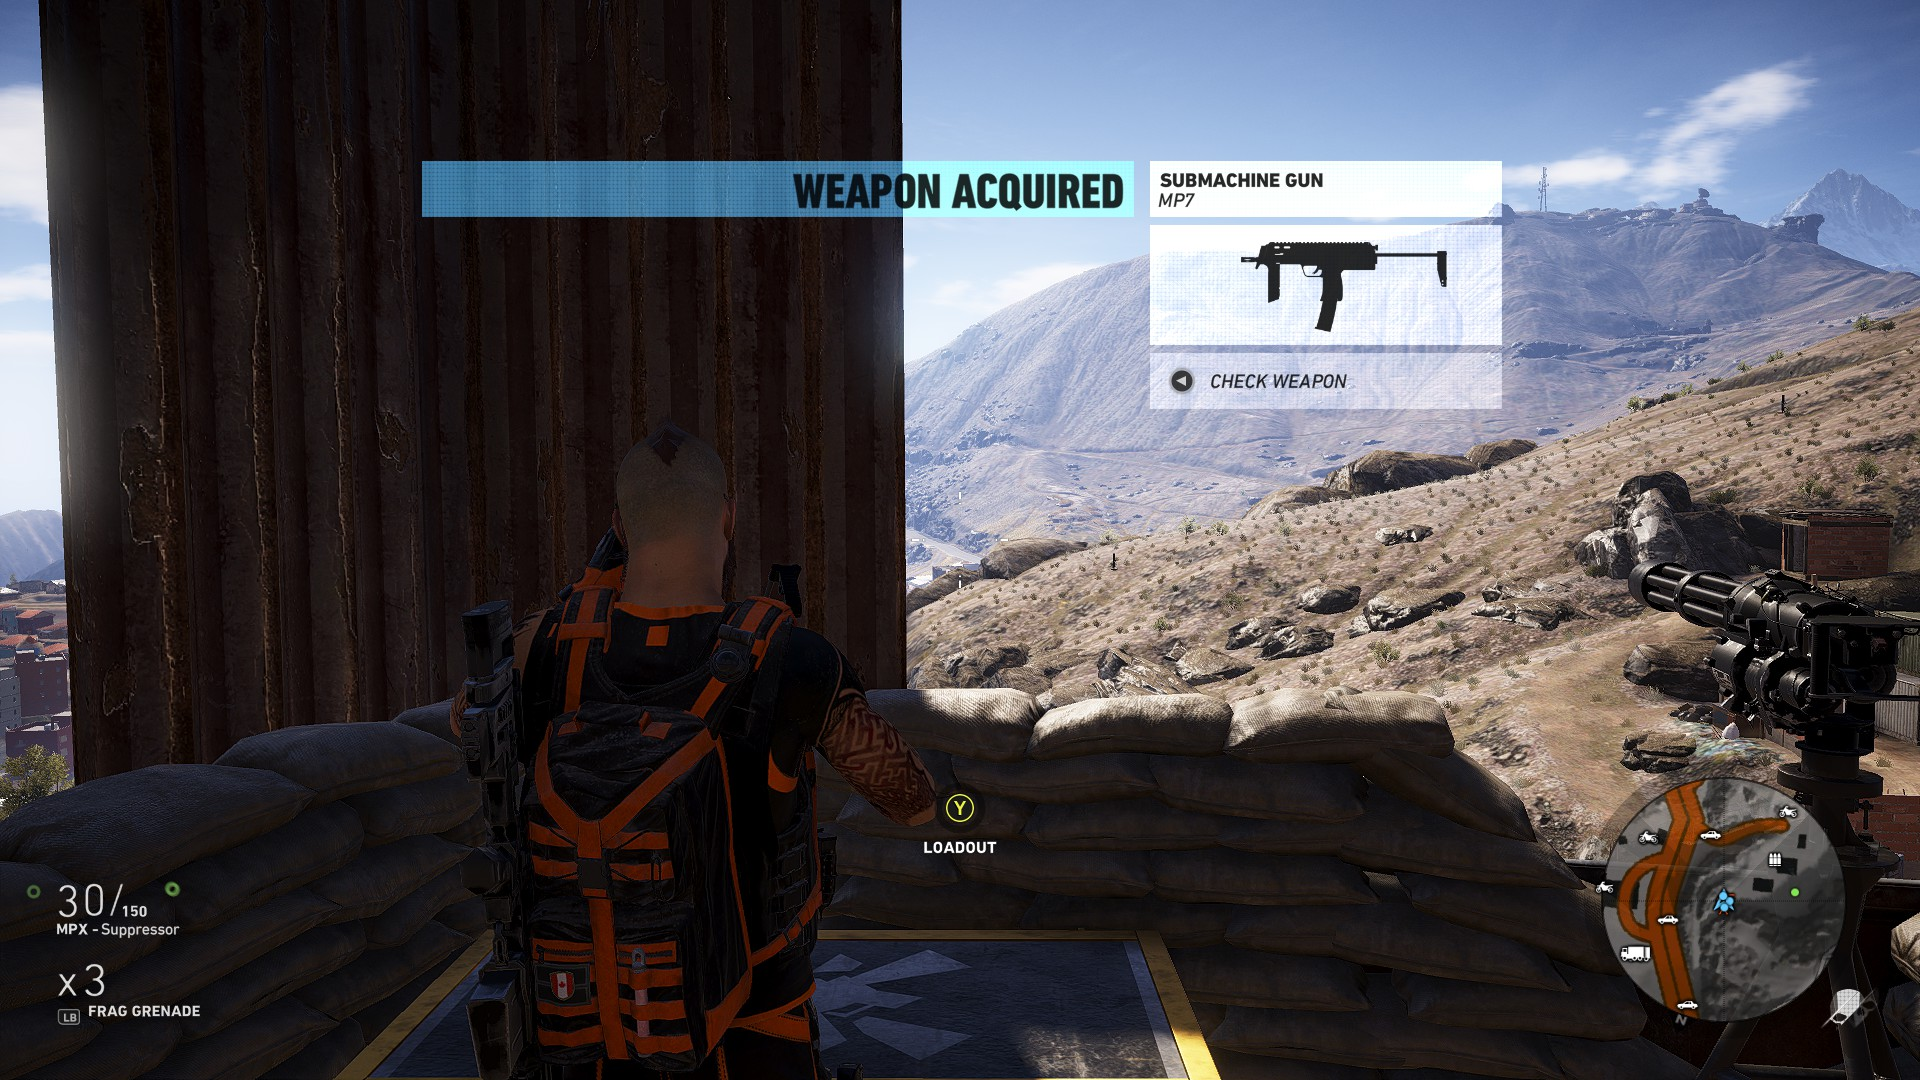 The MP7 in Ghost Recon Wildlands